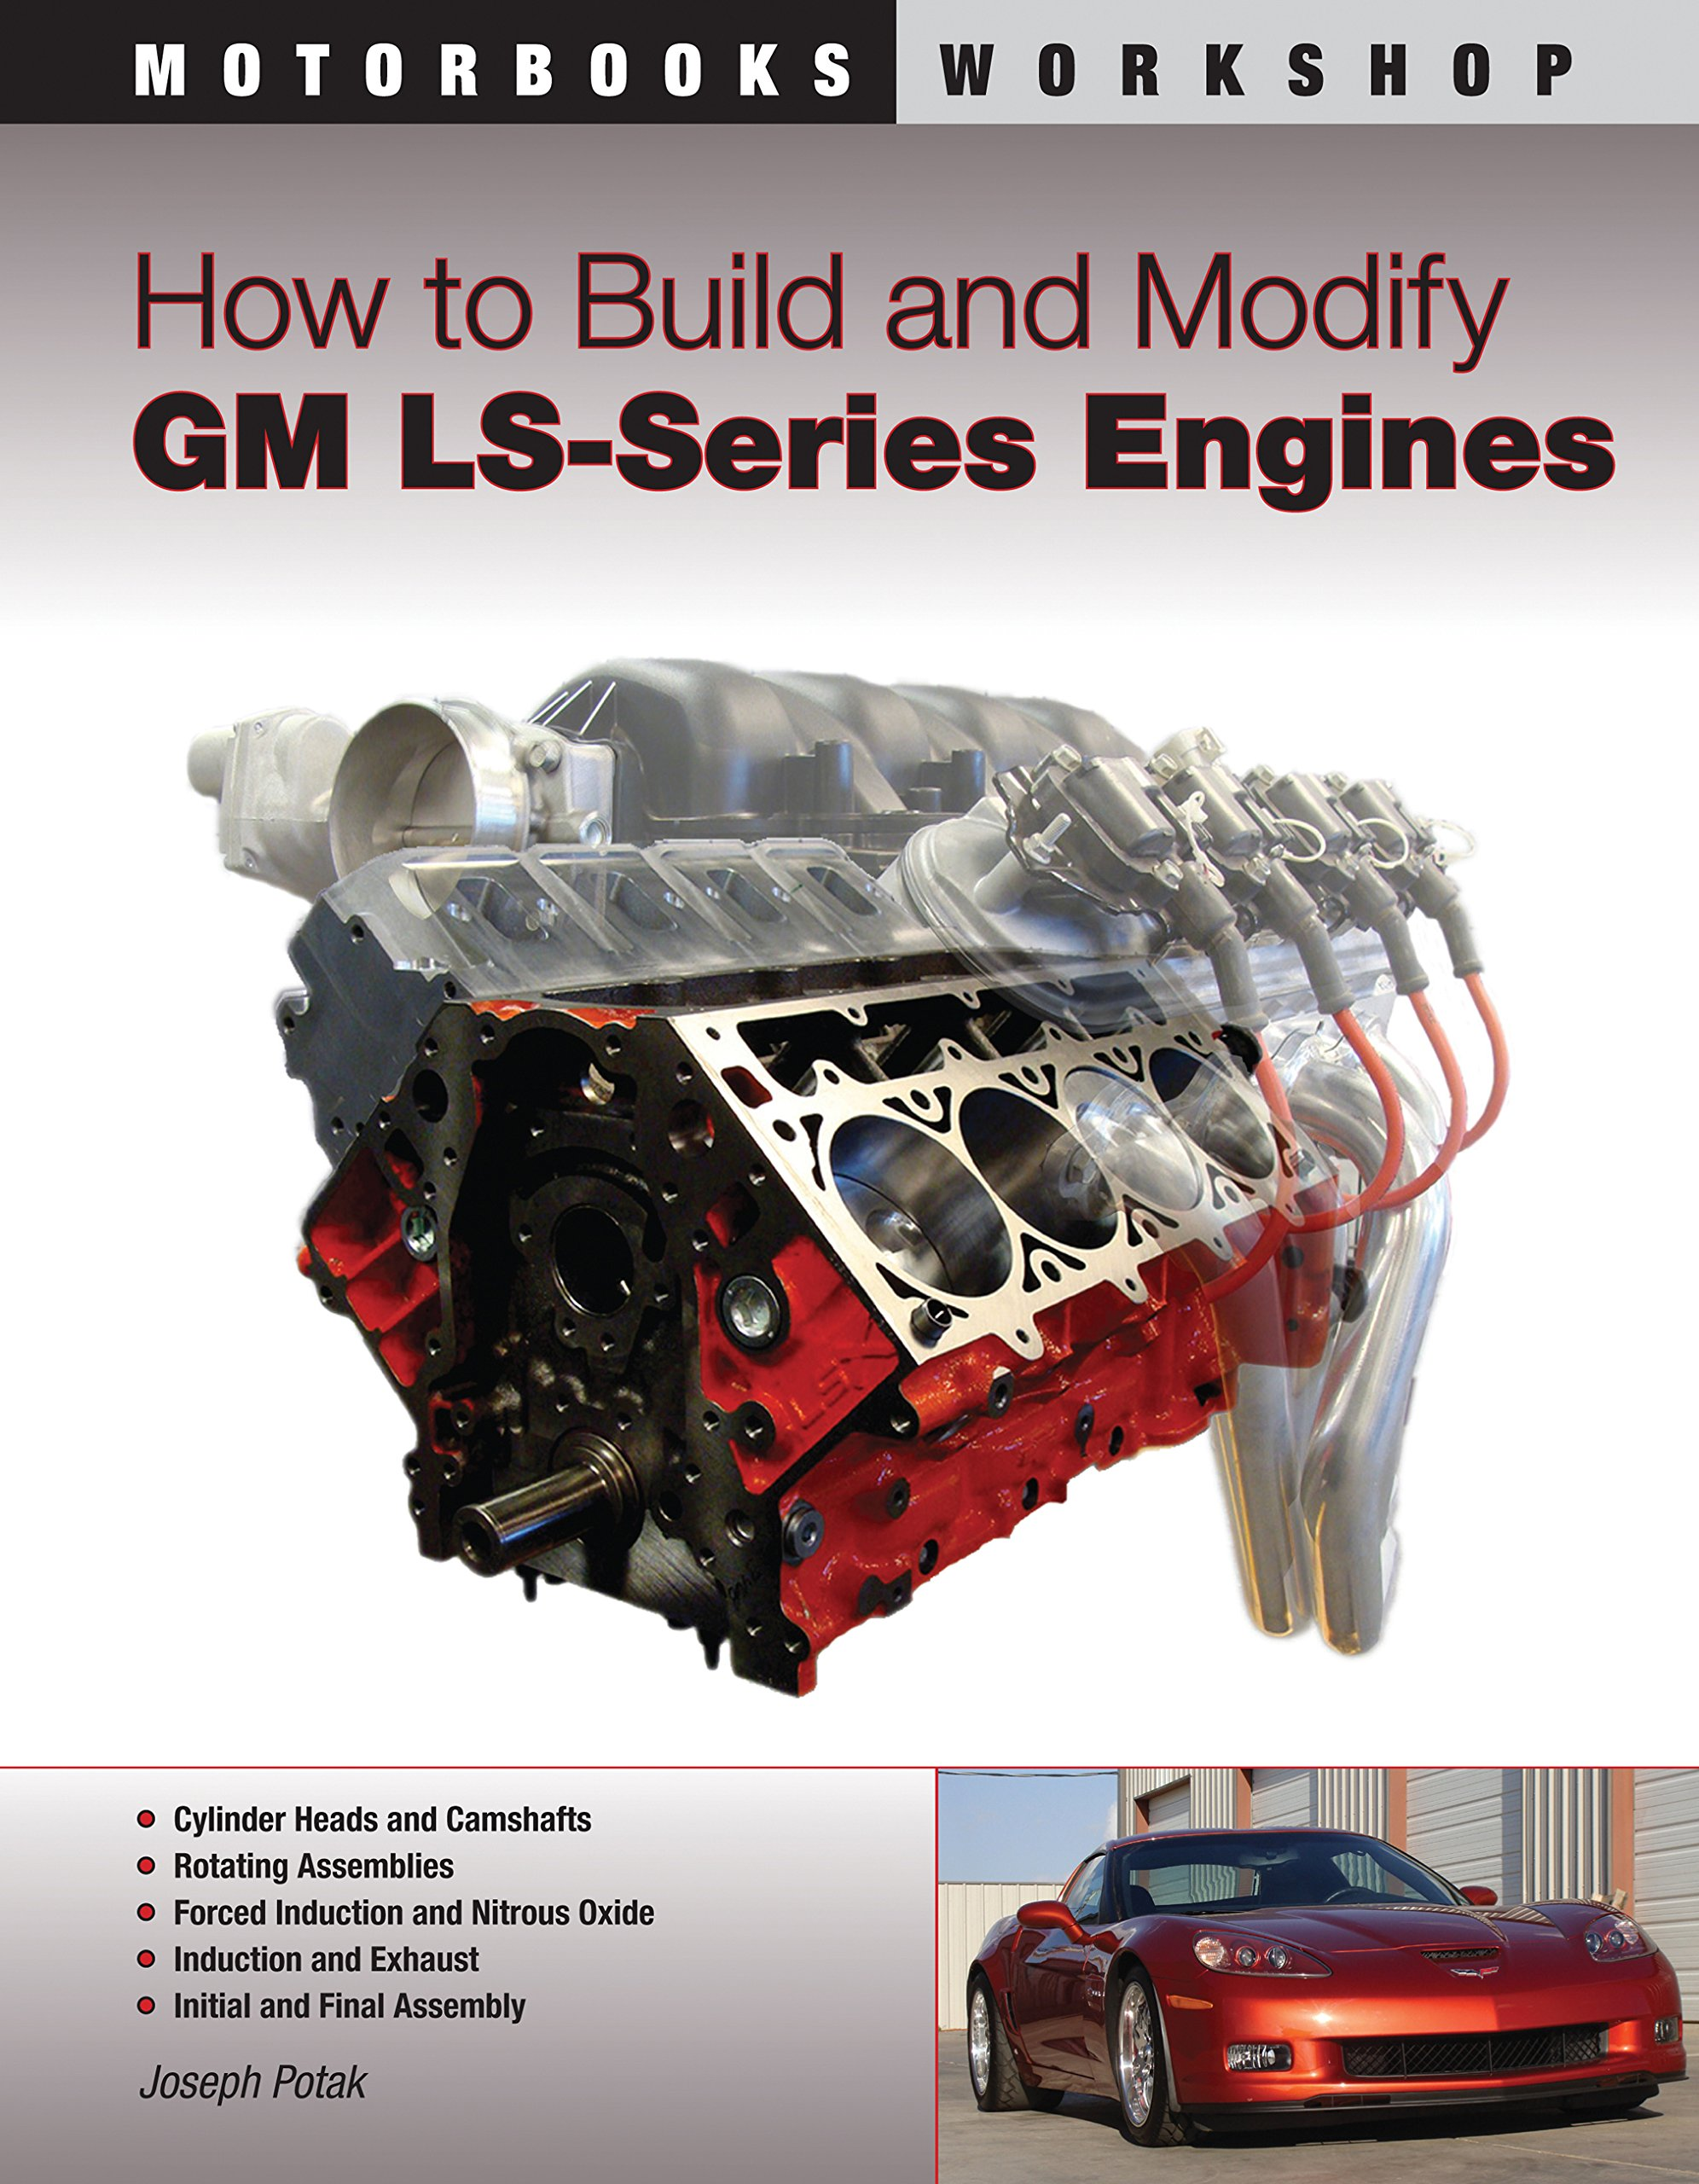 How to Build and Modify GM LS-Series Engines (Motorbooks Workshop): Joseph  Potak: 0752748335431: Amazon.com: Books